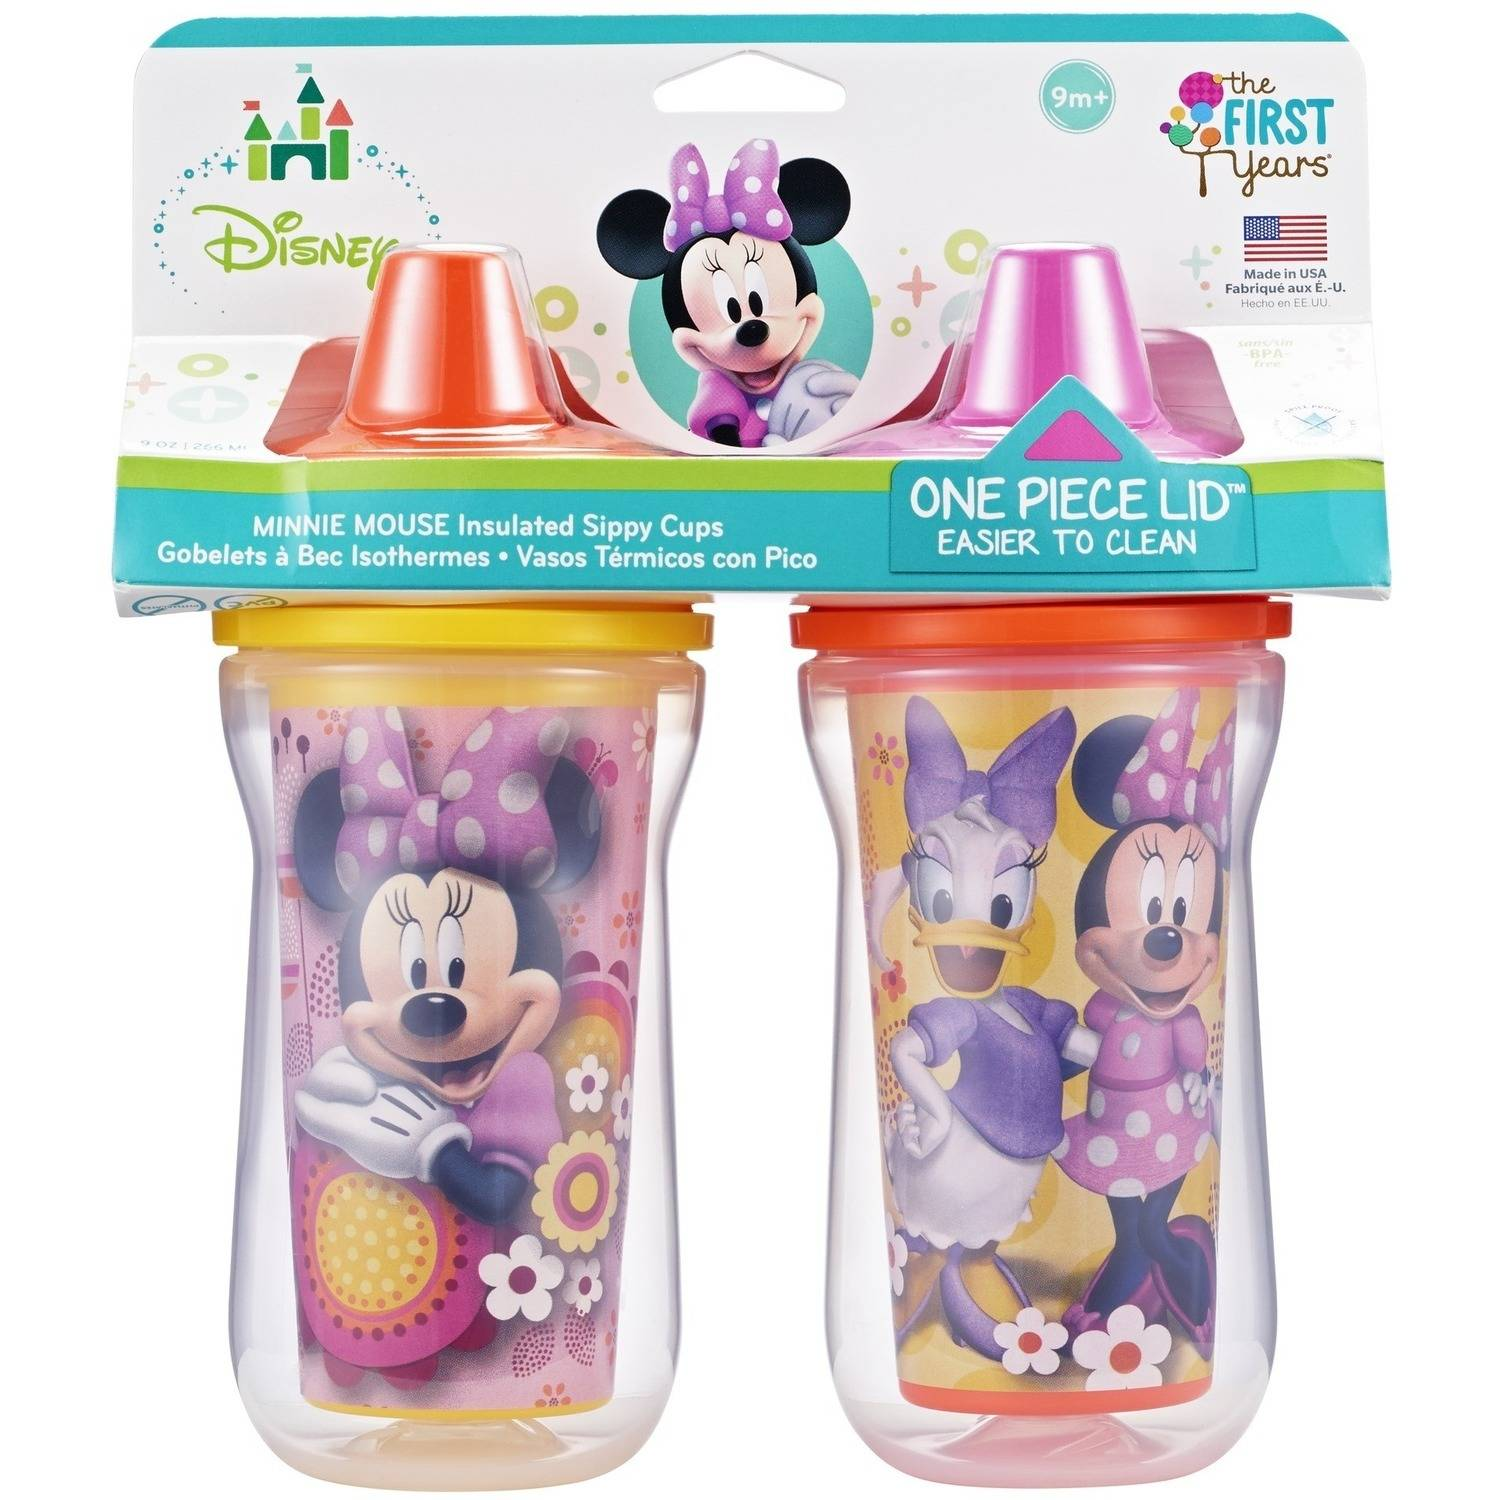 The First Years Disney Baby Minnie Mouse Insulated Sippy Cup with One Piece Lid, BPA-Free - 9 oz, 2 pack